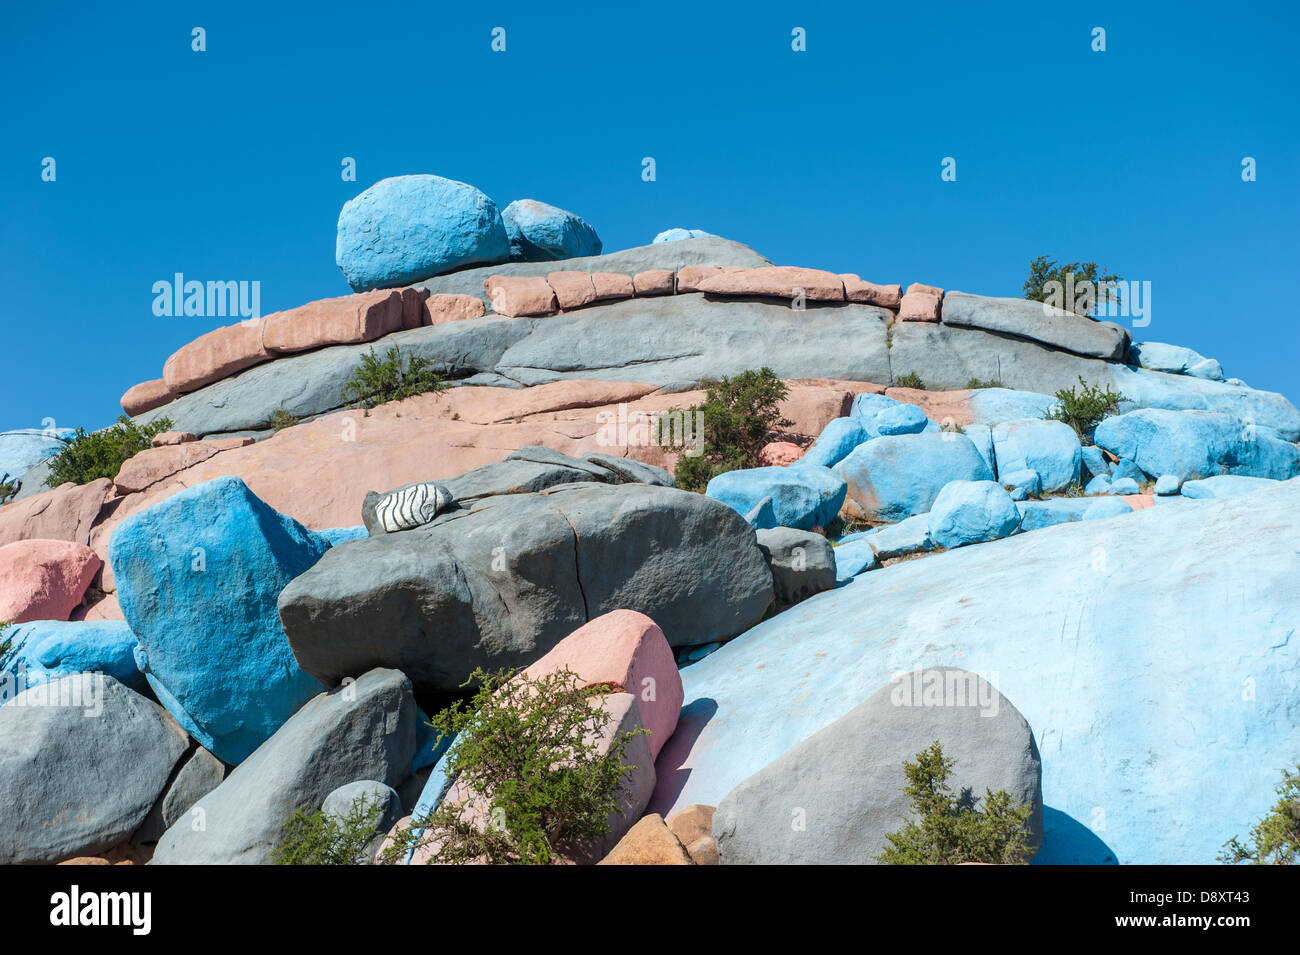 Painted Rocks, Tafraoute, Morocco - Stock Image